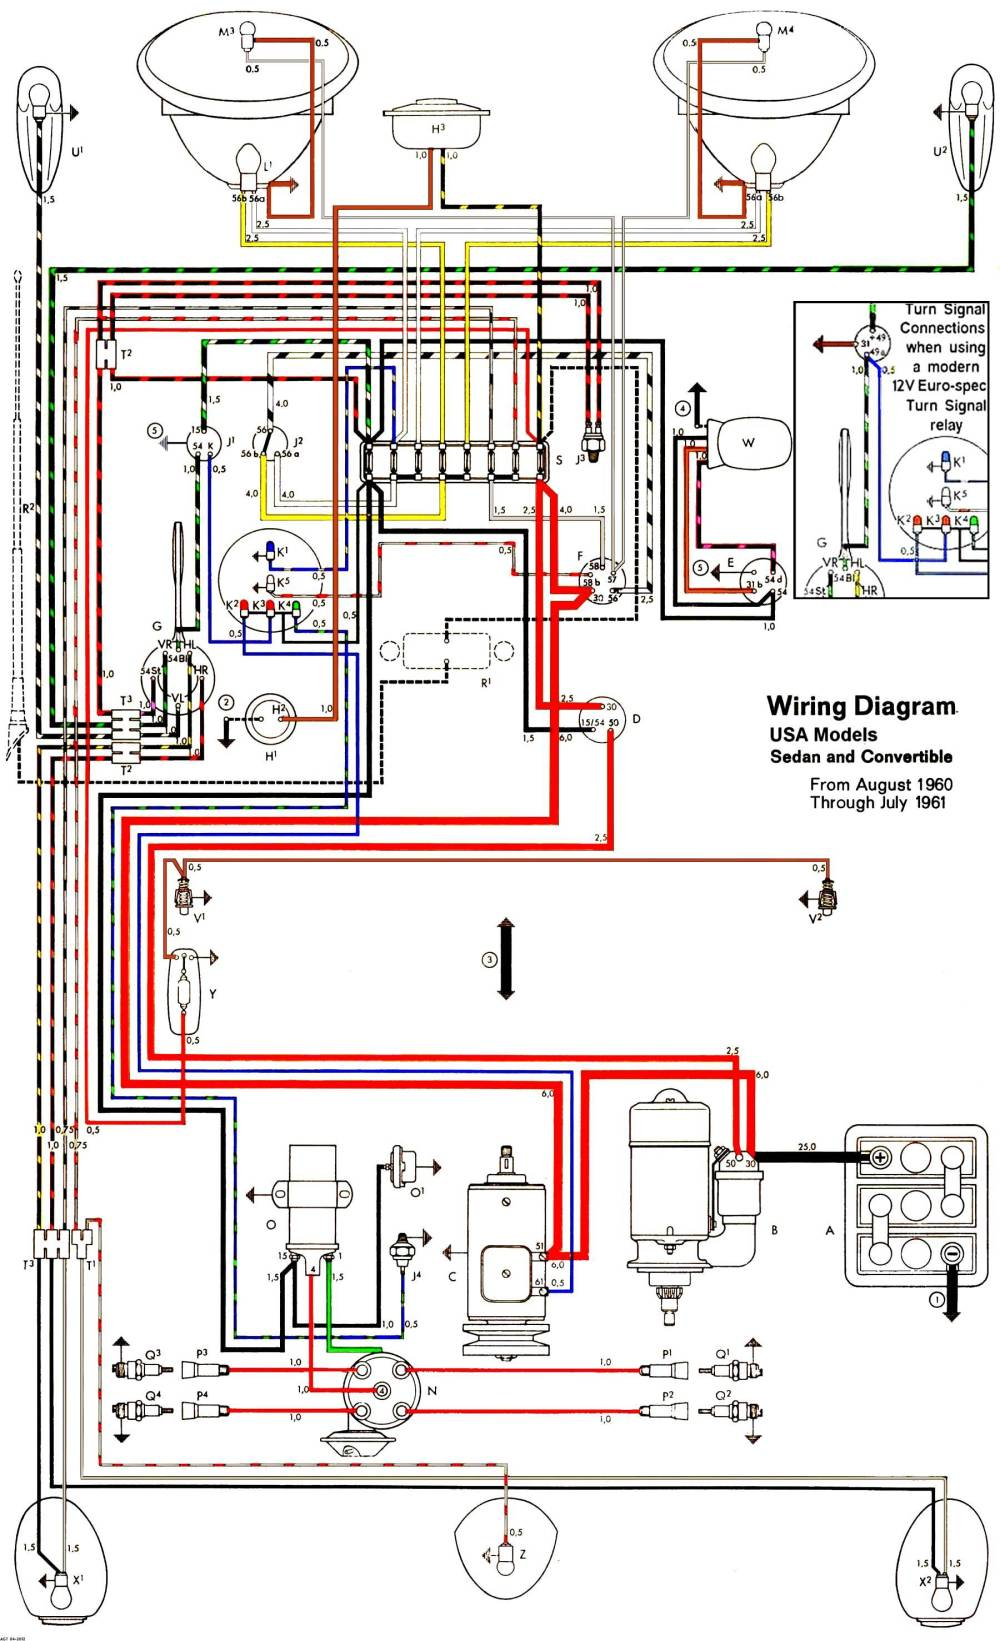 medium resolution of thesamba com type 1 wiring diagrams 1973 vw bug ignition switch diagram 68 vw ignition switch wiring diagram